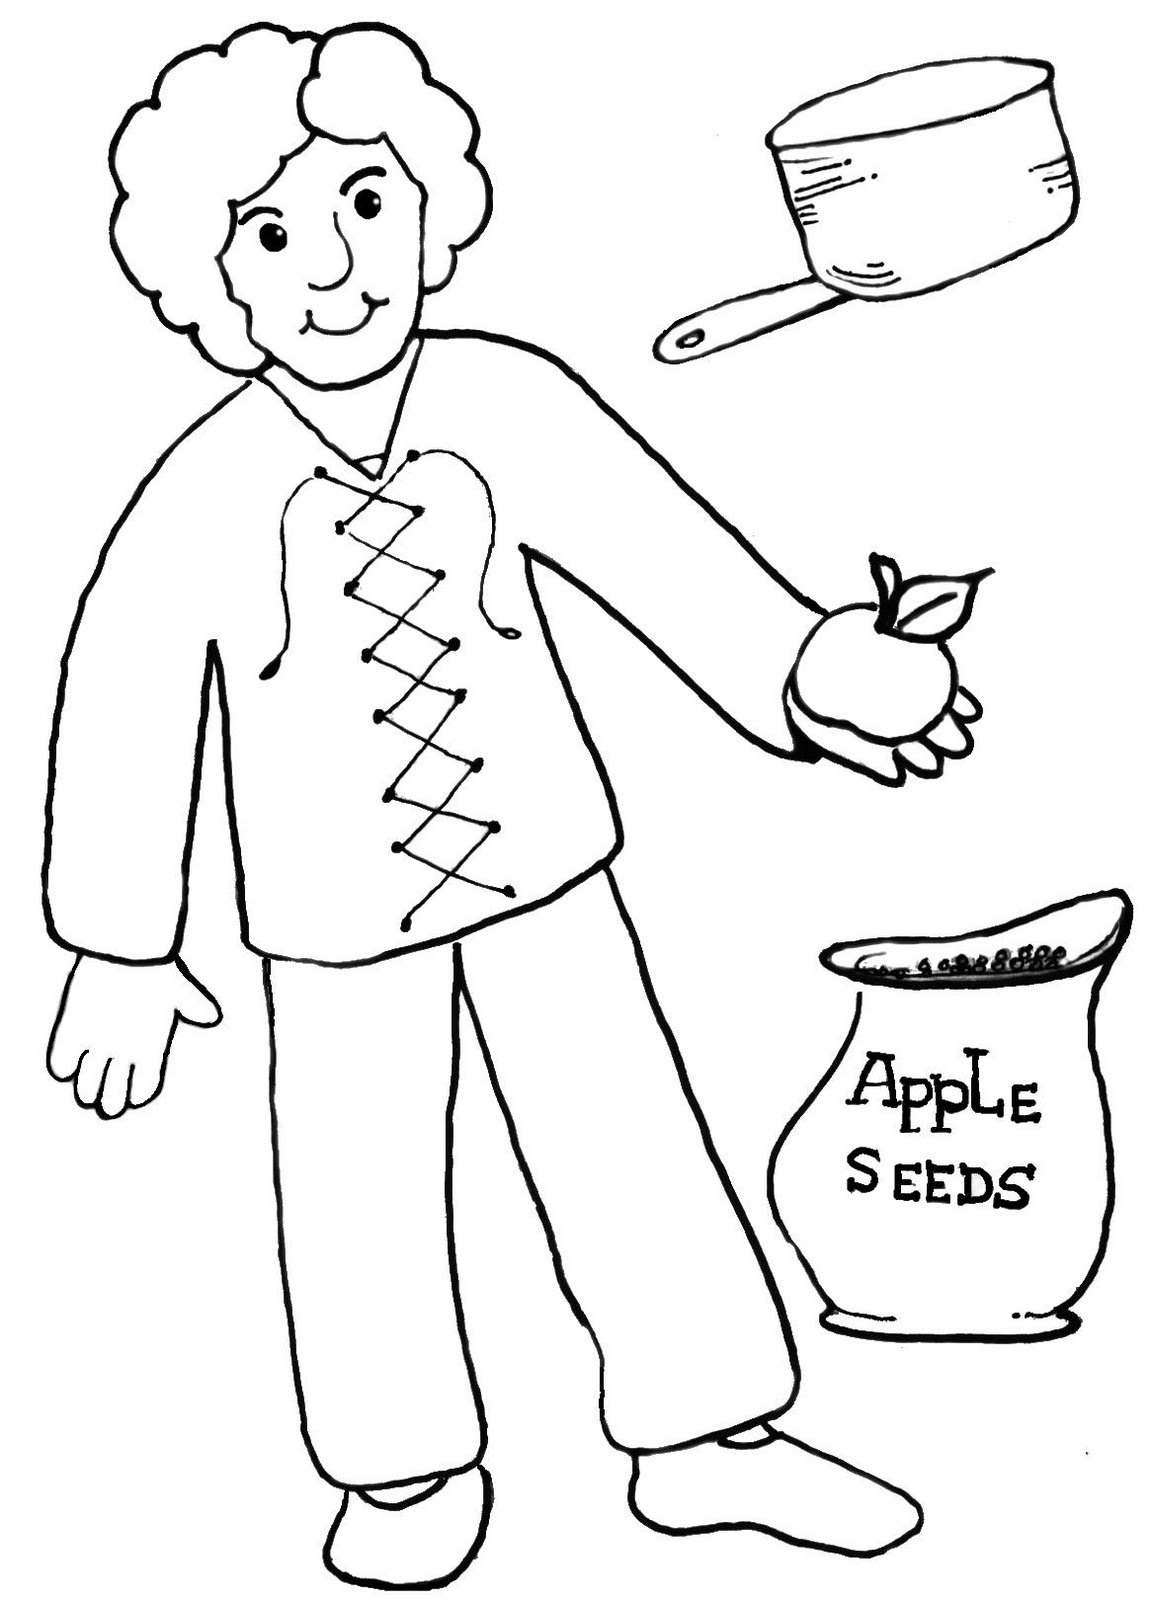 Johnny Appleseed Color Pages Printable Pages Neo Coloring